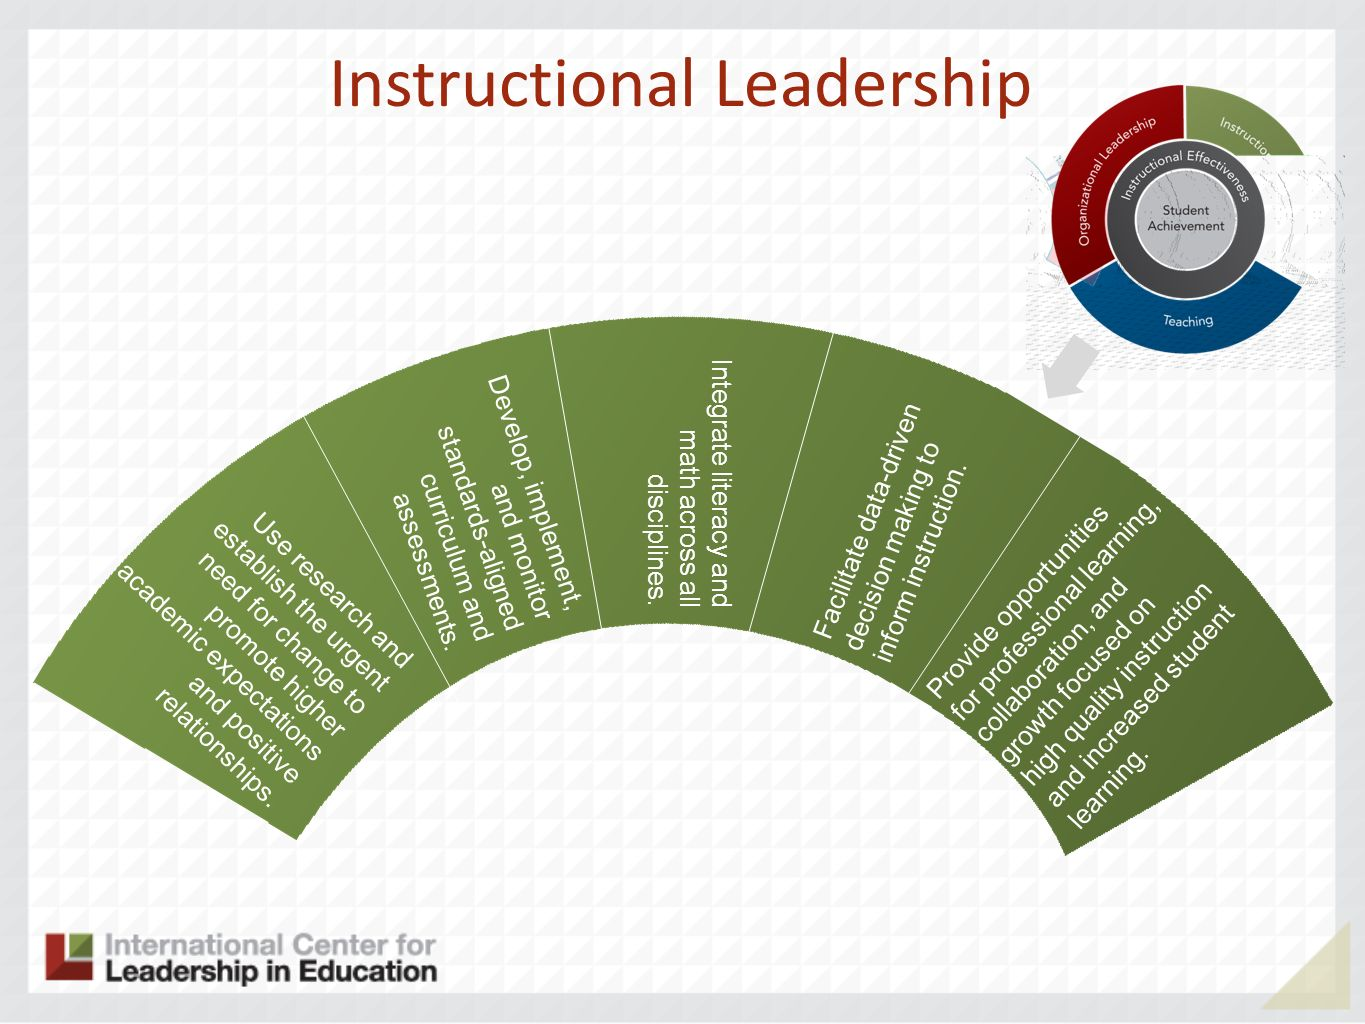 Instructional Leadership Use research and establish the urgent need for change to promote higher academic expectations and positive relationships.